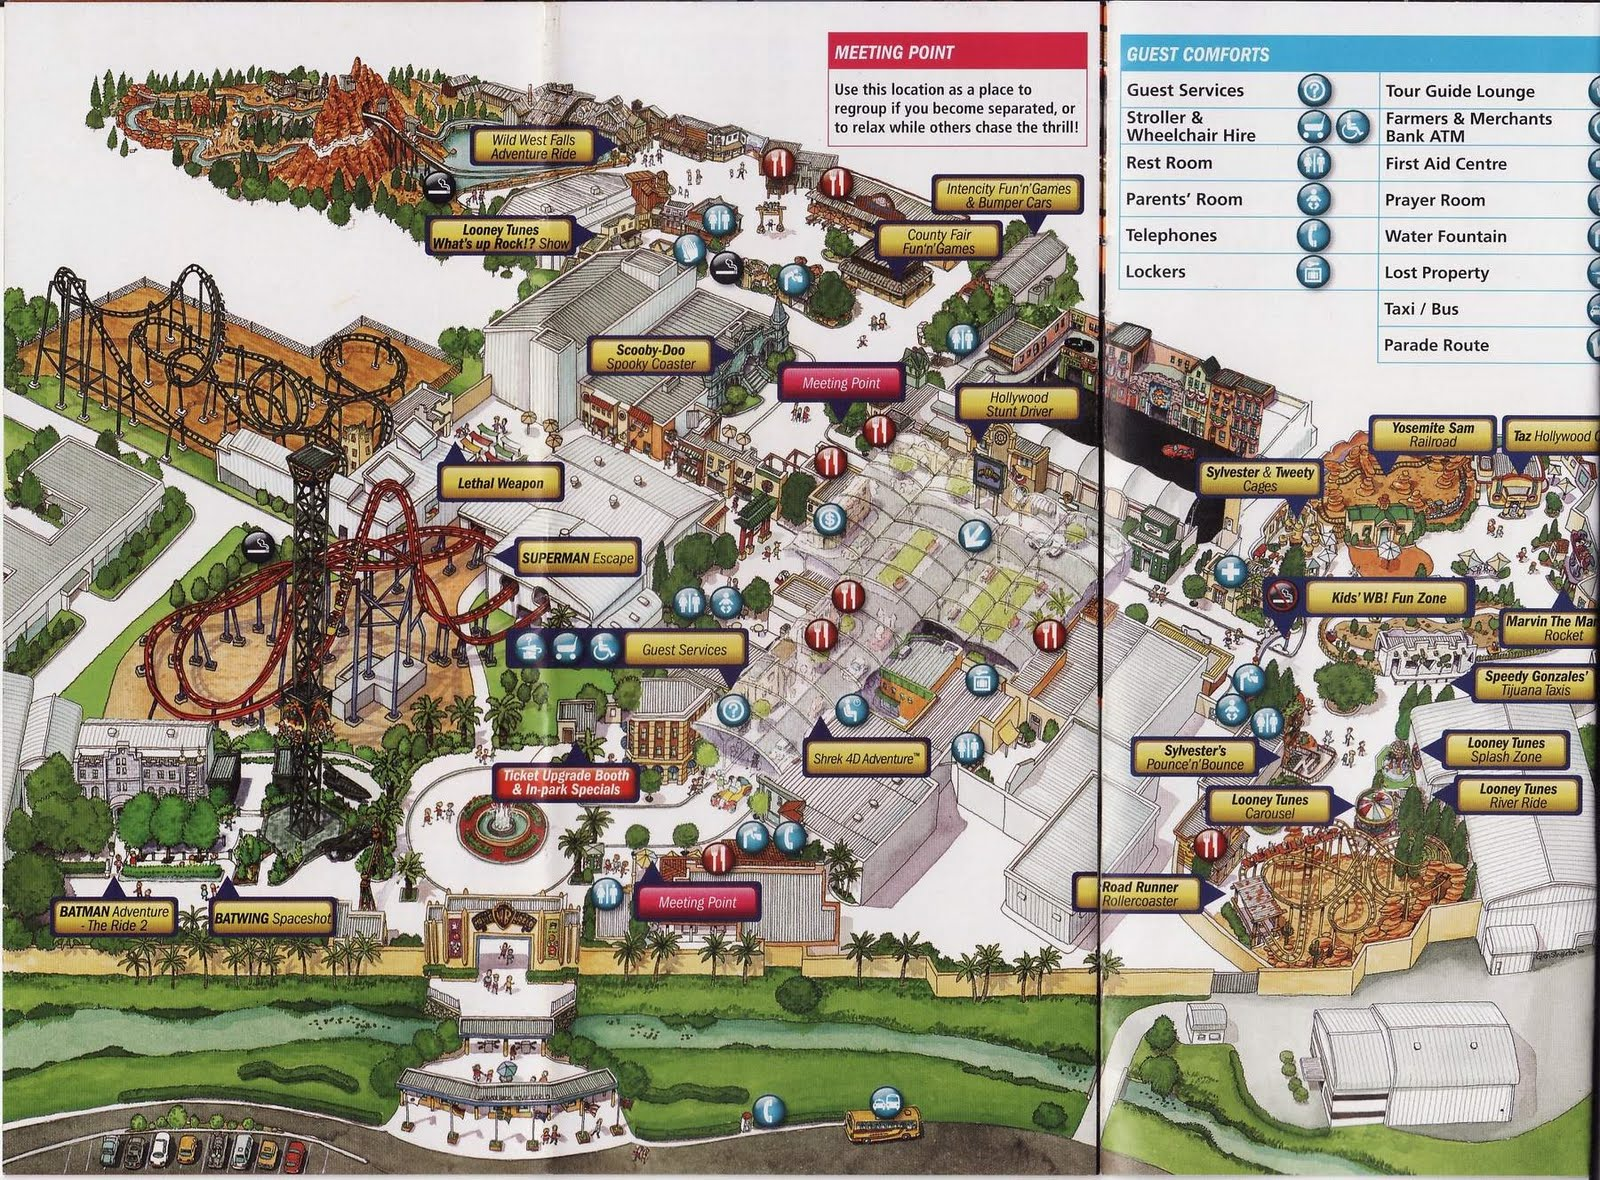 Intimidator305s content page 4 parkz forums theme park community movieworldag gumiabroncs Choice Image